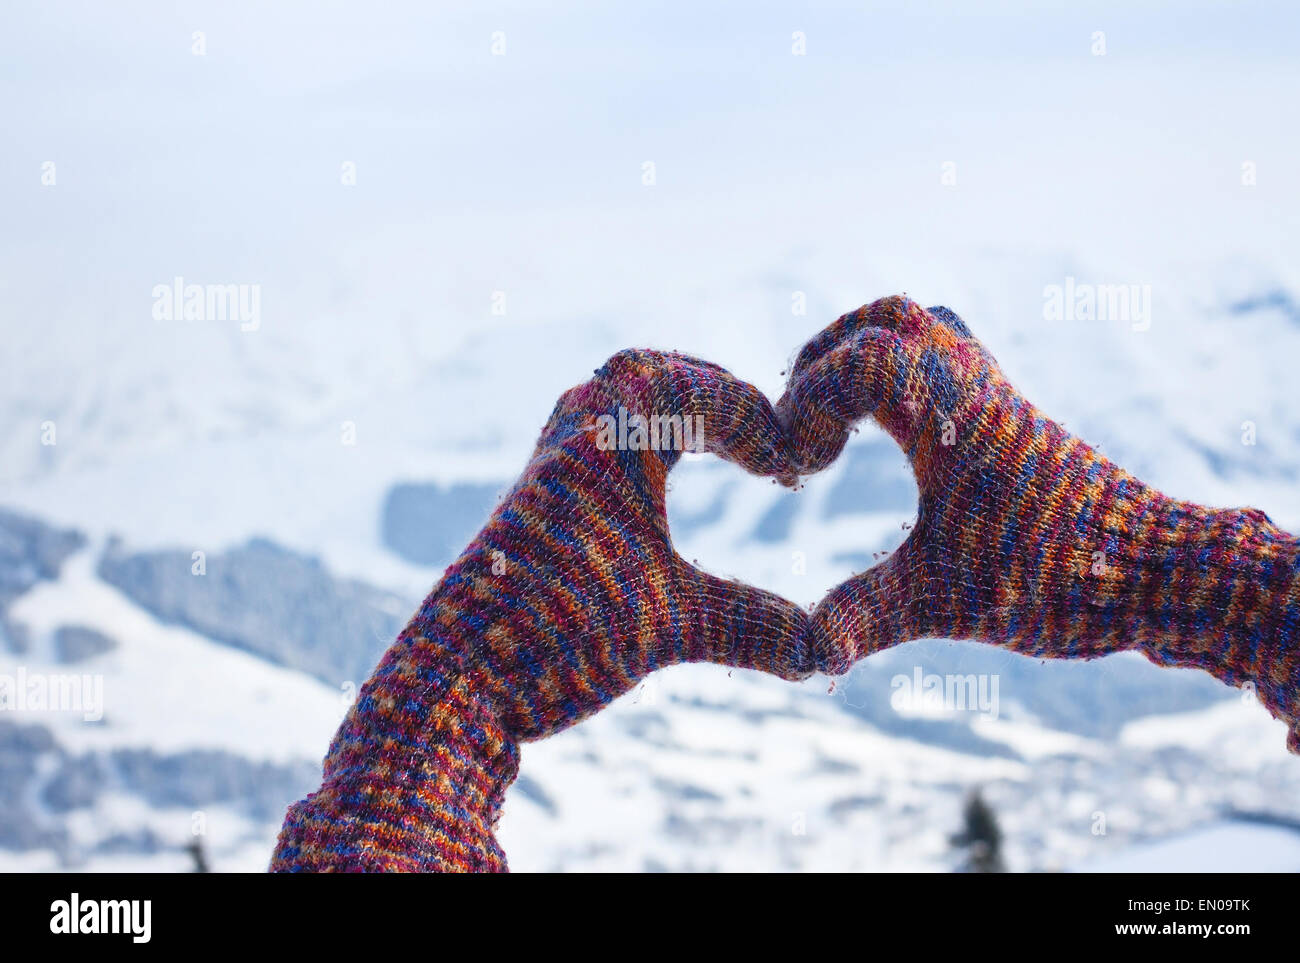 love winter - Stock Image